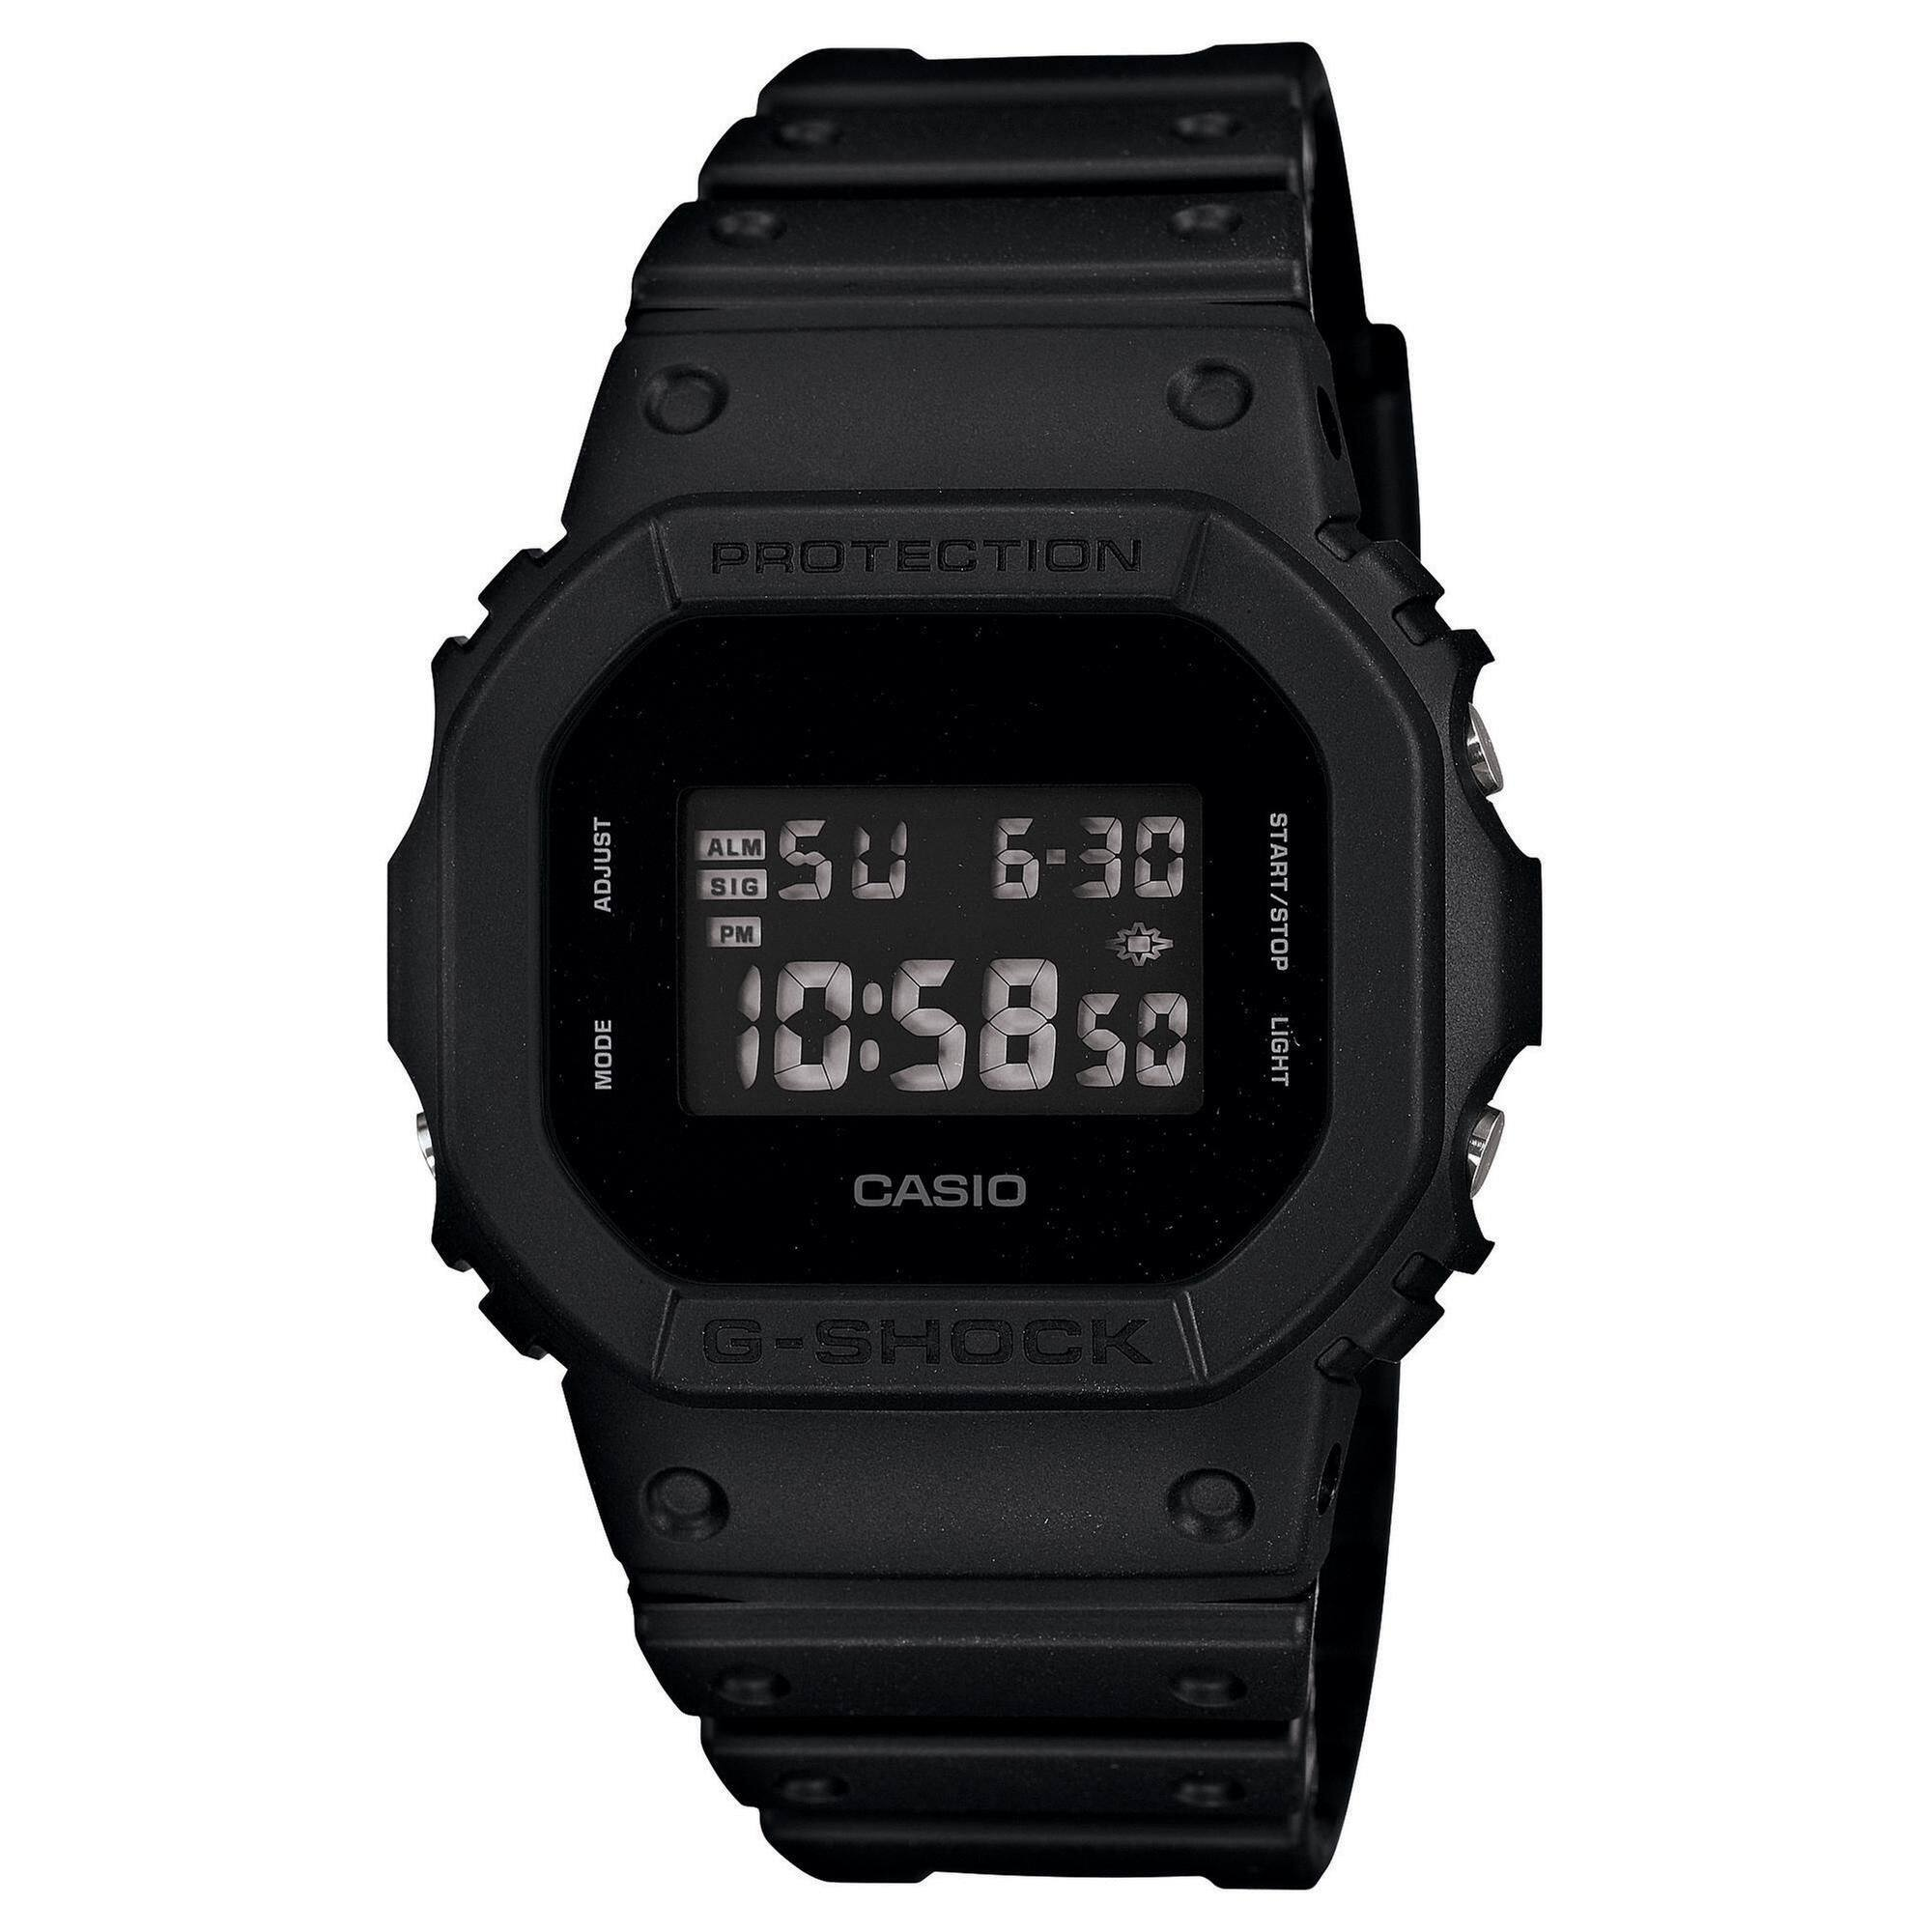 Casio G-Shock Watch DW5600BB-1 $49